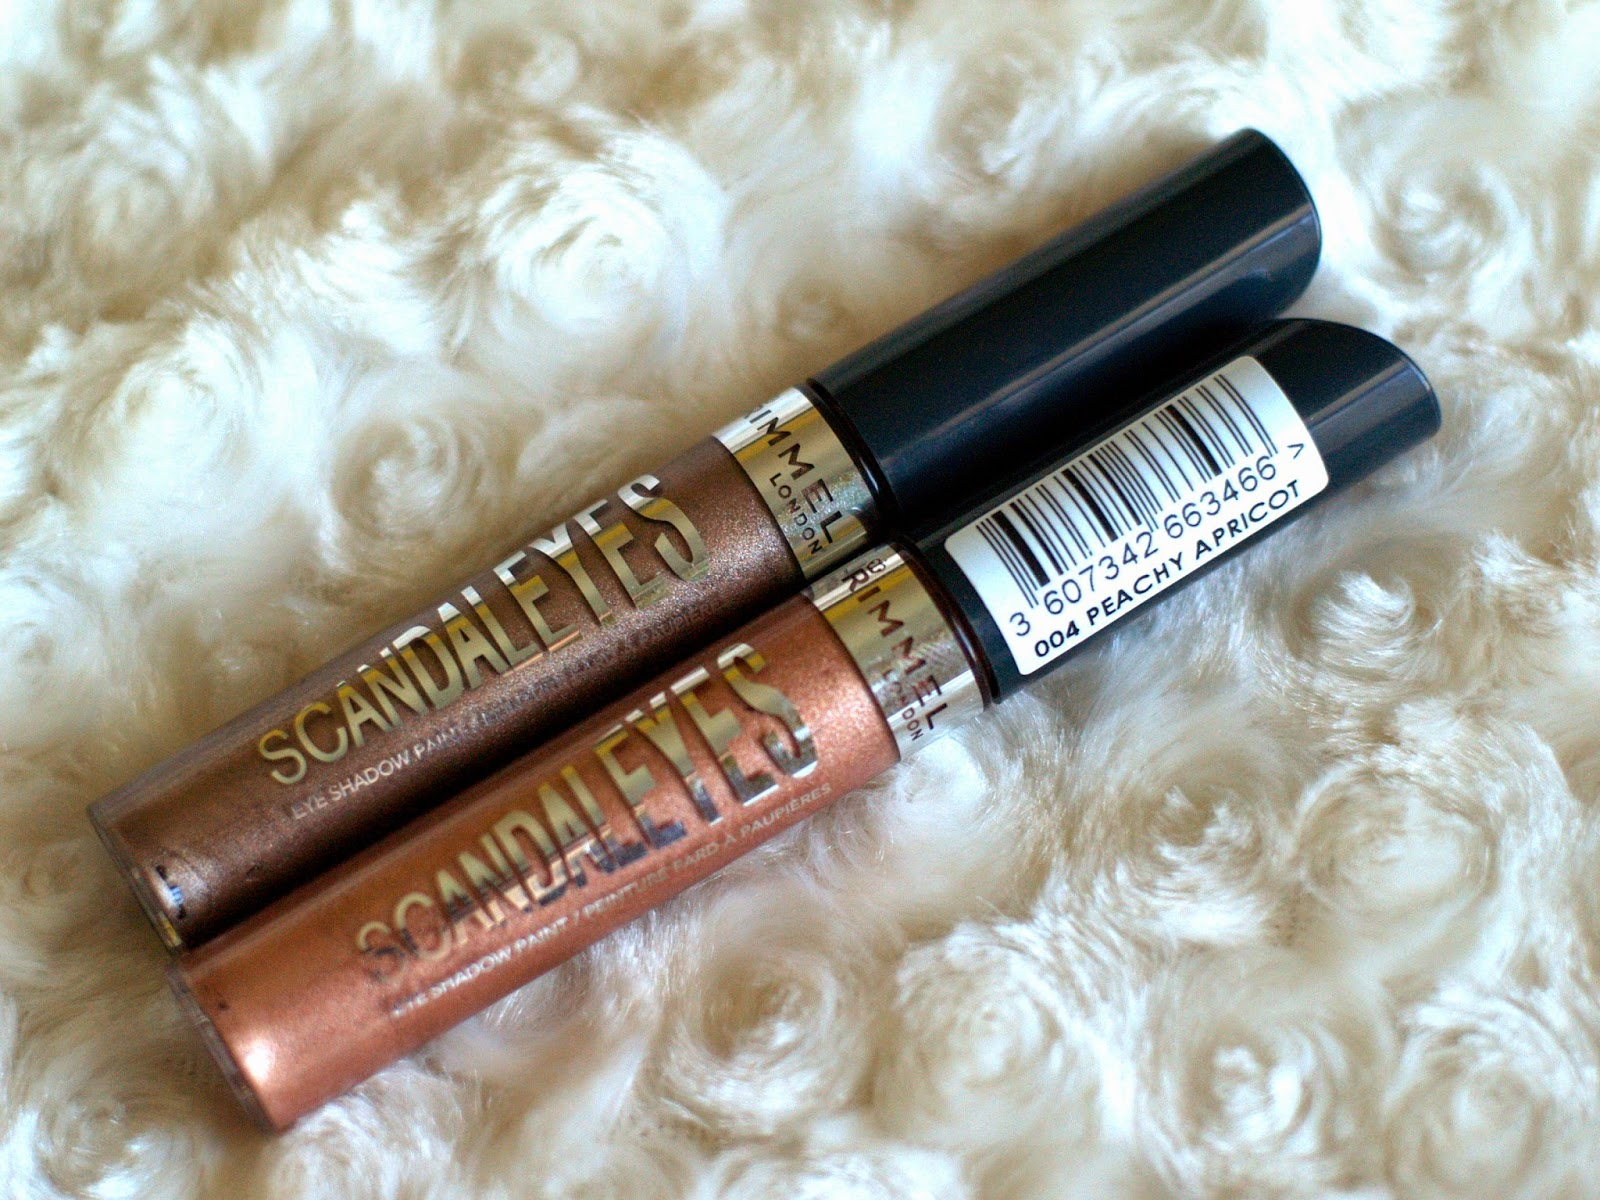 Rimmel Scandaleyes Eye Shadow Paint